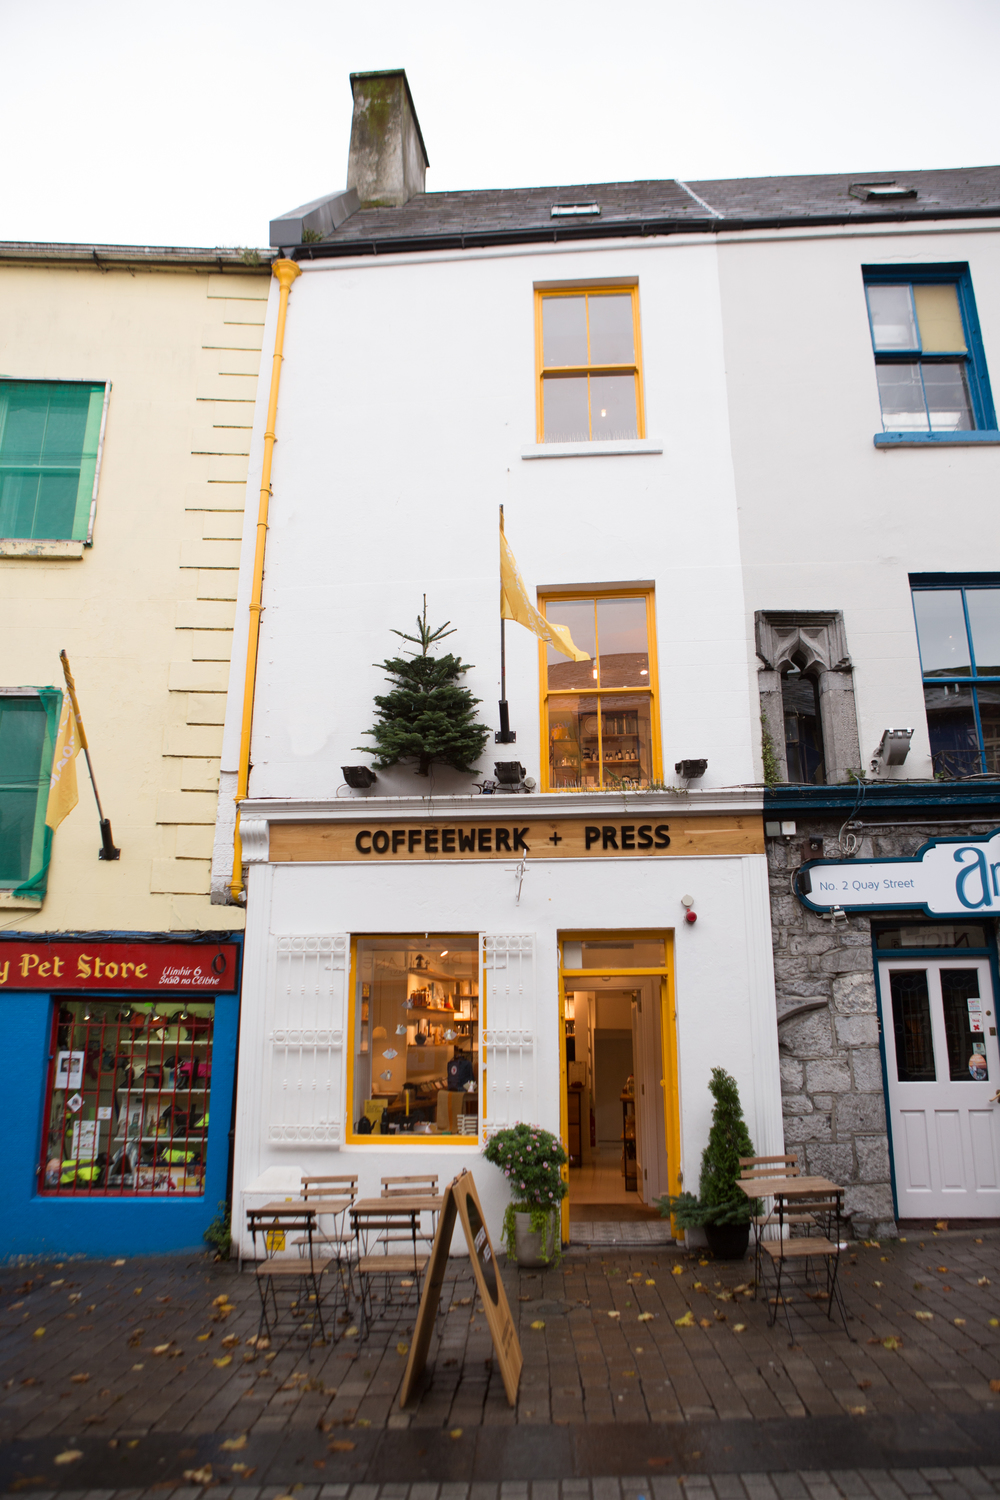 I knew I would love it just by looking at the logo and facade! Coffeewerk + Press, Galway, Ireland November 2015